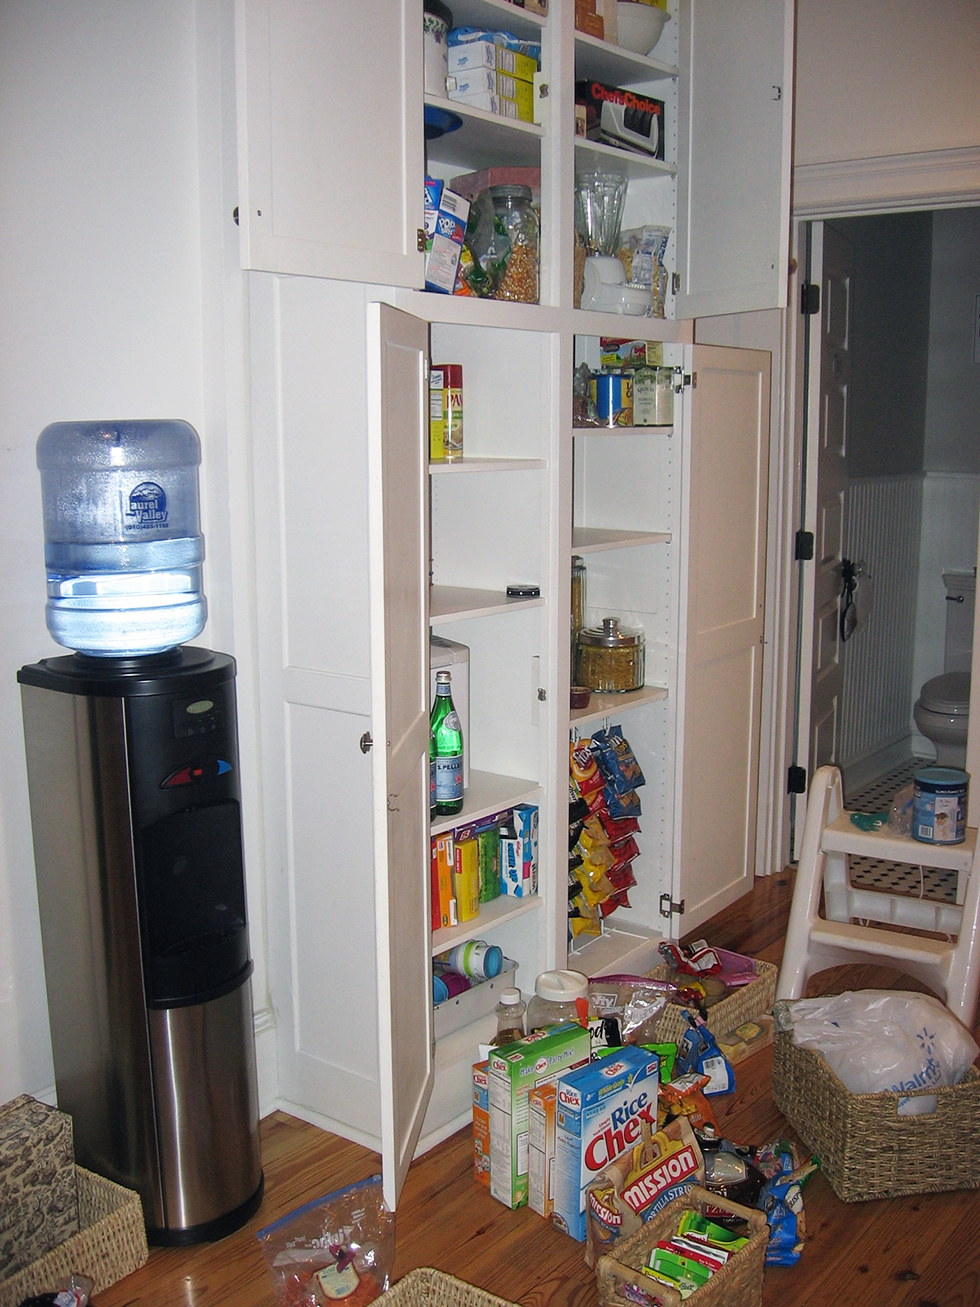 Pantry reorganization in progress